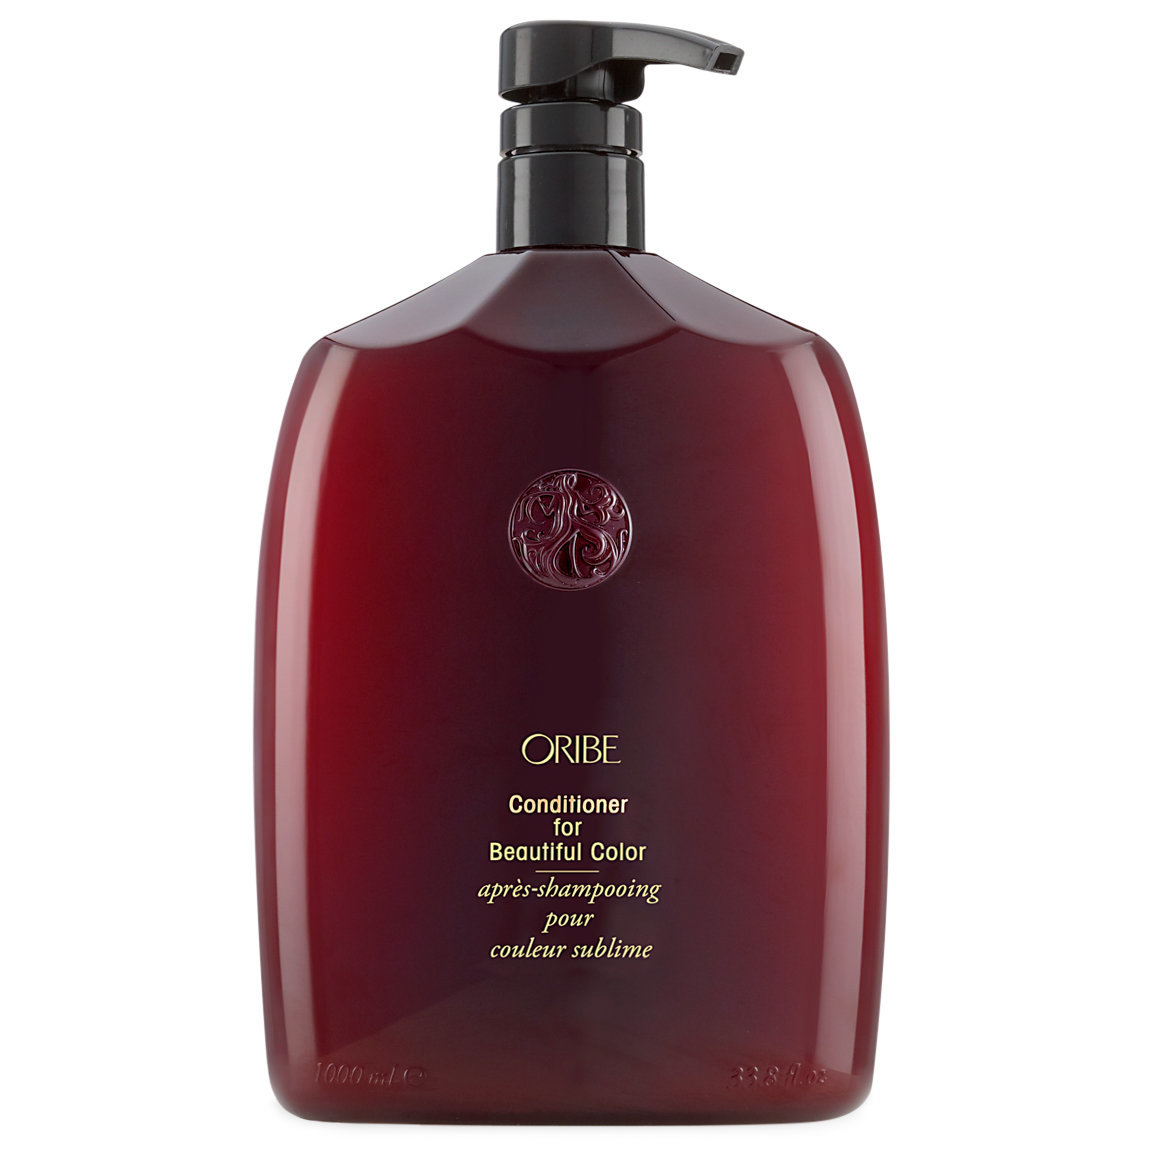 Oribe Conditioner for Beautiful Color 1 L alternative view 1 - product swatch.